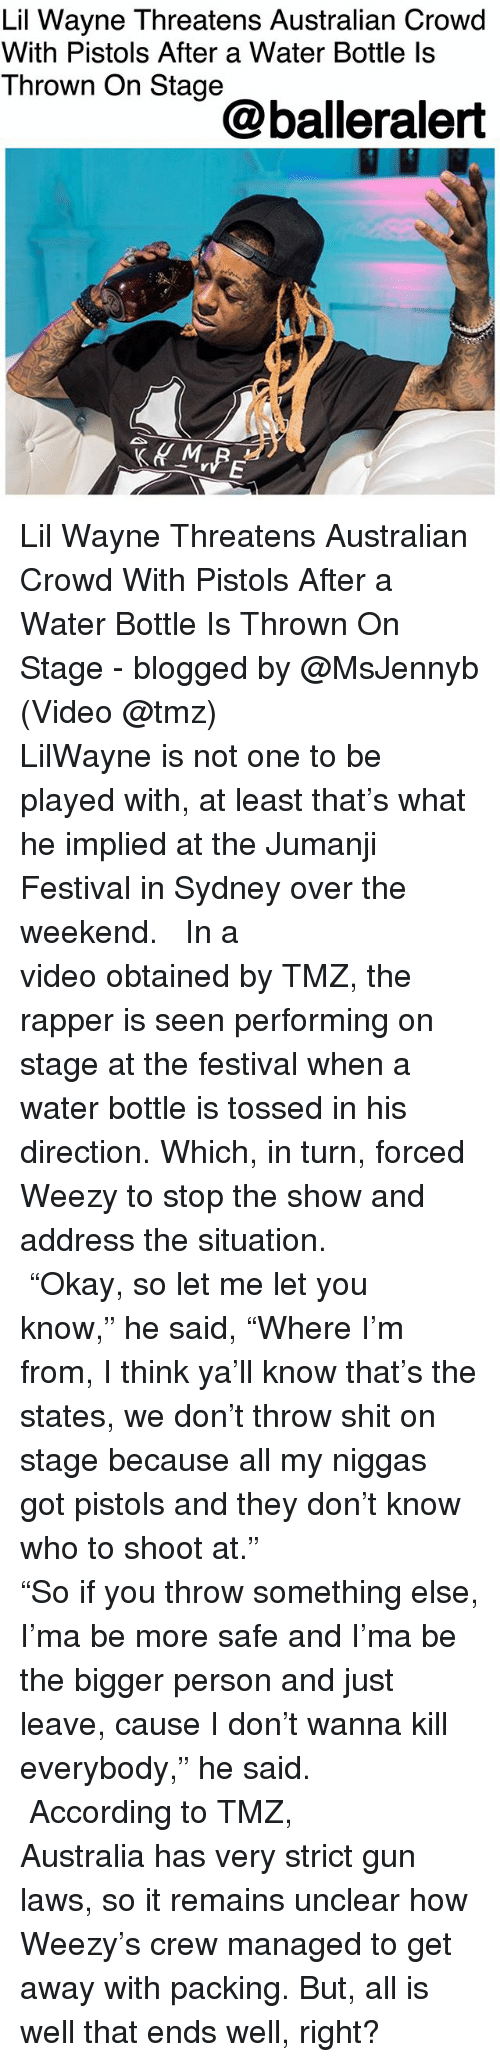 "my niggas: Lil Wayne Threatens Australian Crowd  With Pistols After a Water Bottle ls  Thrown On Stage  @balleralert Lil Wayne Threatens Australian Crowd With Pistols After a Water Bottle Is Thrown On Stage - blogged by @MsJennyb (Video @tmz) ⠀⠀⠀⠀⠀⠀⠀⠀⠀ ⠀⠀⠀⠀⠀⠀⠀⠀⠀ LilWayne is not one to be played with, at least that's what he implied at the Jumanji Festival in Sydney over the weekend. ⠀⠀⠀⠀⠀⠀⠀⠀⠀ ⠀⠀⠀⠀⠀⠀⠀⠀⠀ In a video obtained by TMZ, the rapper is seen performing on stage at the festival when a water bottle is tossed in his direction. Which, in turn, forced Weezy to stop the show and address the situation. ⠀⠀⠀⠀⠀⠀⠀⠀⠀ ⠀⠀⠀⠀⠀⠀⠀⠀⠀ ""Okay, so let me let you know,"" he said, ""Where I'm from, I think ya'll know that's the states, we don't throw shit on stage because all my niggas got pistols and they don't know who to shoot at."" ⠀⠀⠀⠀⠀⠀⠀⠀⠀ ⠀⠀⠀⠀⠀⠀⠀⠀⠀ ""So if you throw something else, I'ma be more safe and I'ma be the bigger person and just leave, cause I don't wanna kill everybody,"" he said. ⠀⠀⠀⠀⠀⠀⠀⠀⠀ ⠀⠀⠀⠀⠀⠀⠀⠀⠀ According to TMZ, Australia has very strict gun laws, so it remains unclear how Weezy's crew managed to get away with packing. But, all is well that ends well, right?"